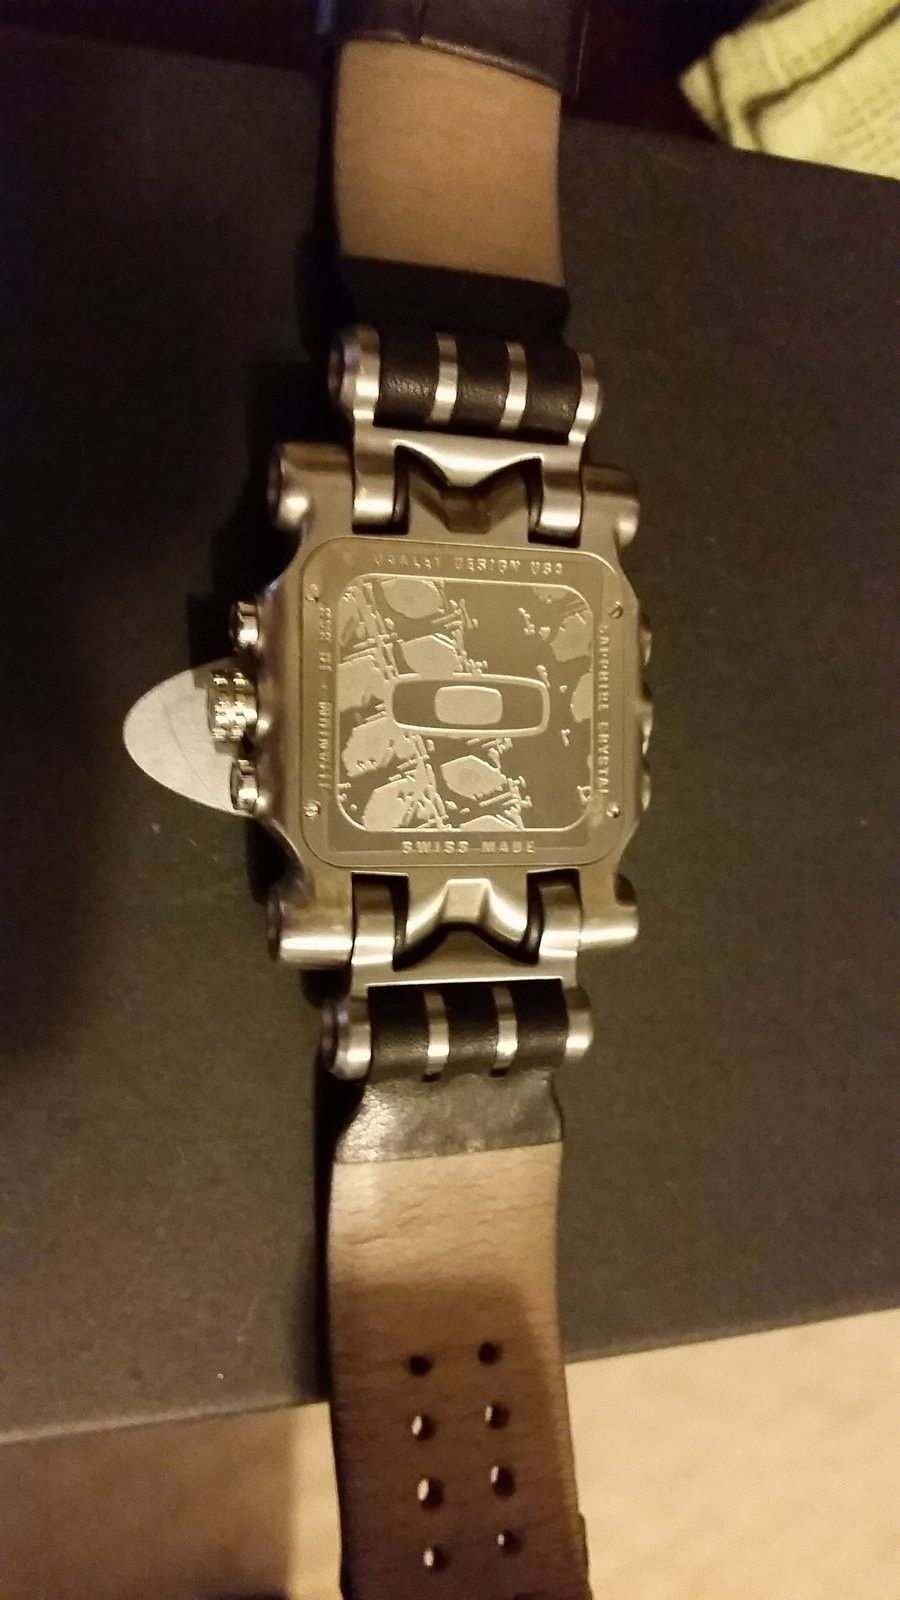 Fs Minute Machine Ti Face /w leather bands - uploadfromtaptalk1421262348387.jpg